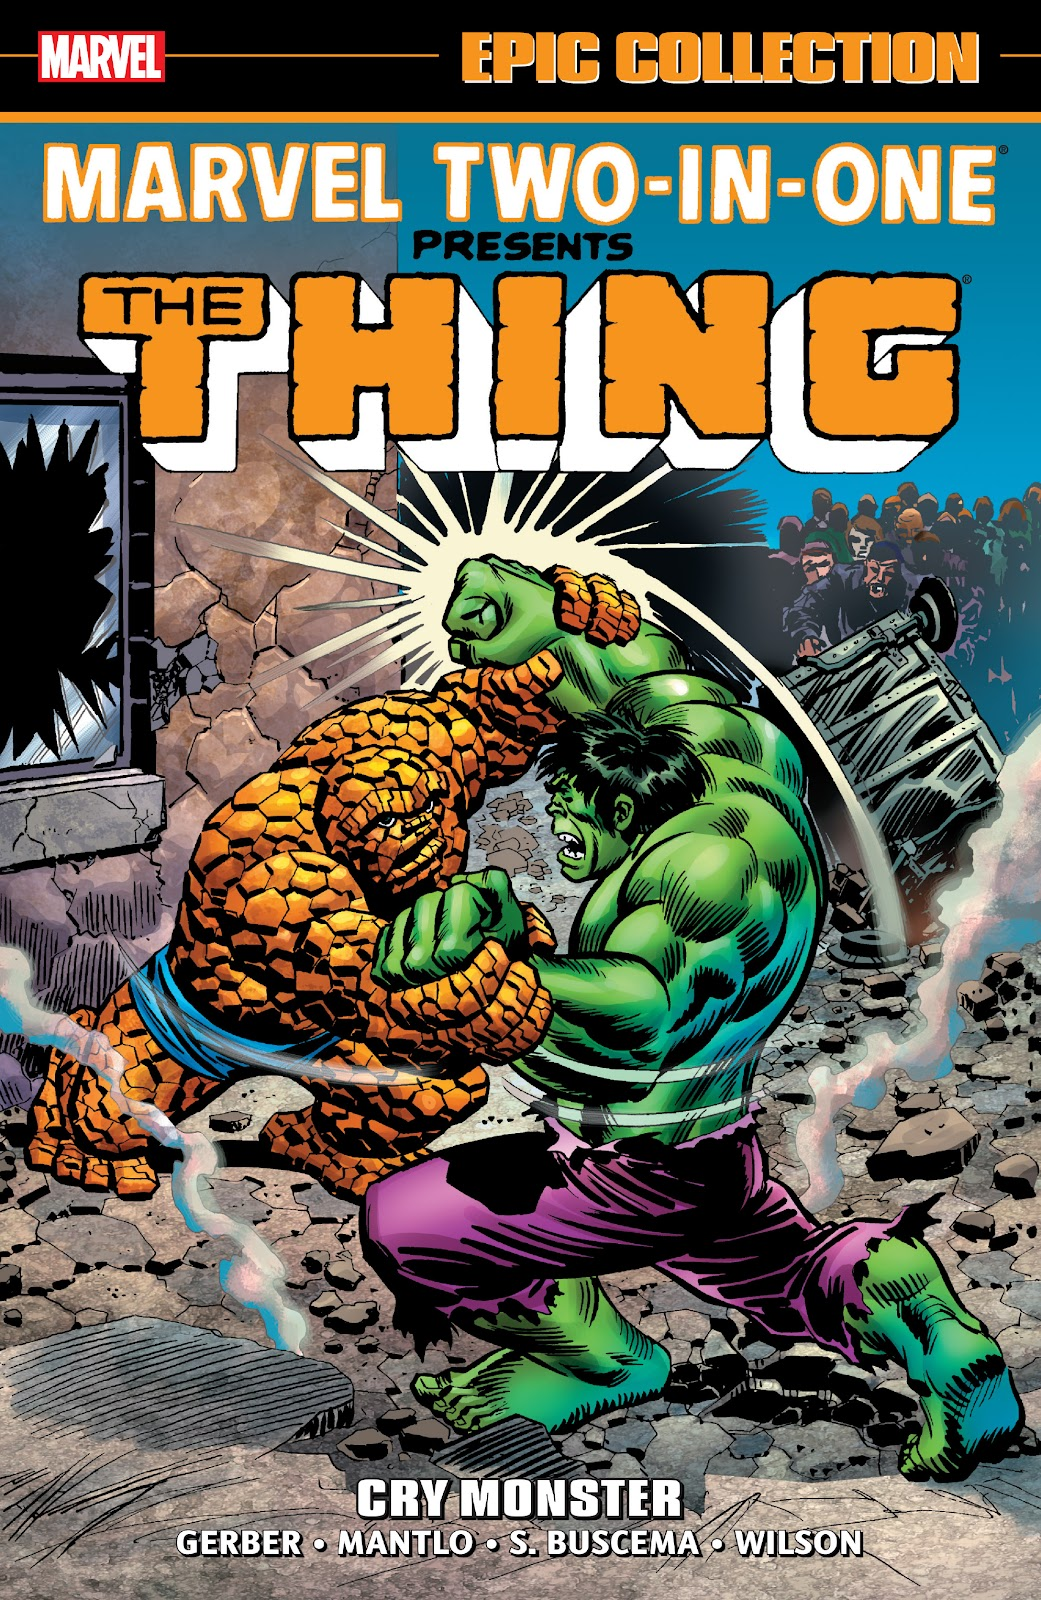 Read online Marvel Two-In-One Epic Collection: Cry Monster comic -  Issue # TPB (Part 1) - 1